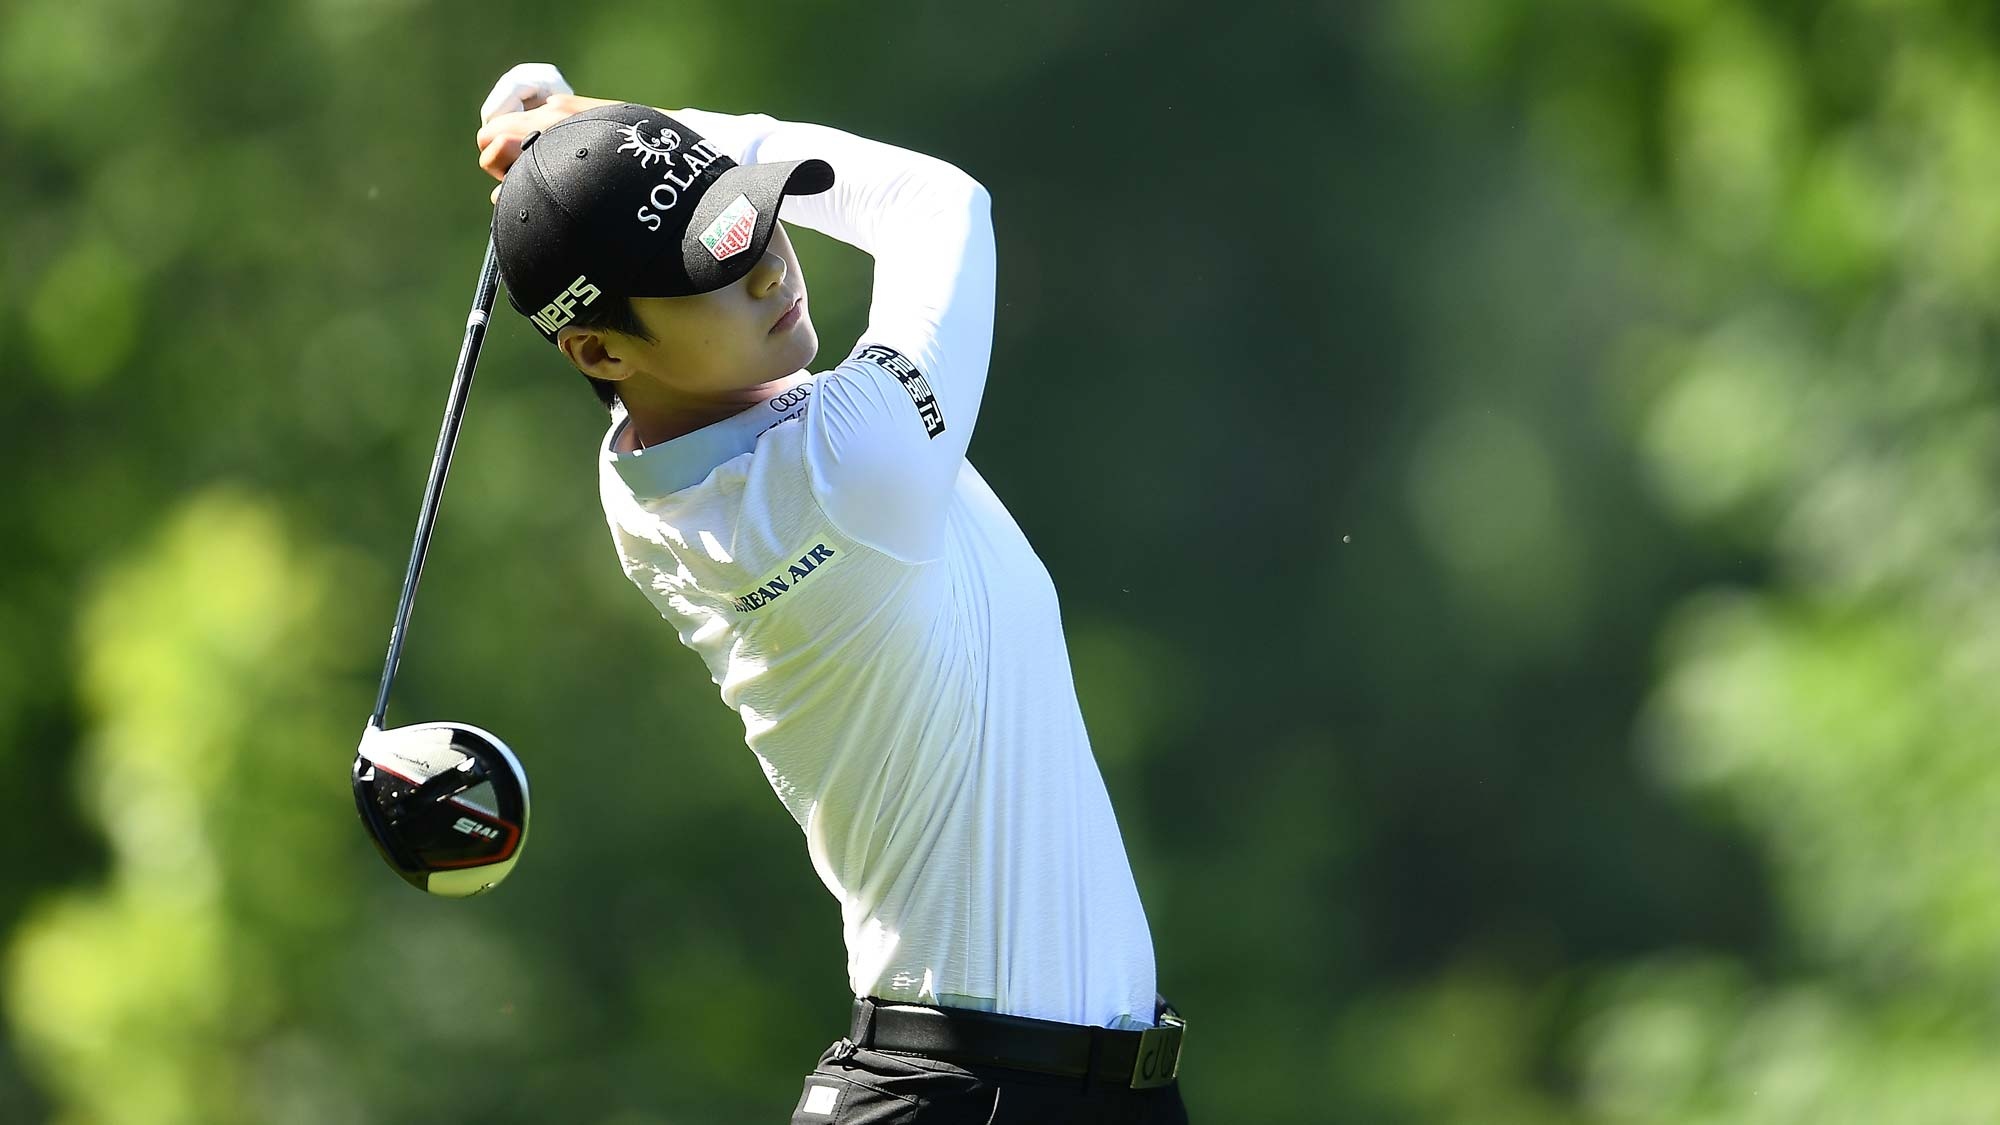 Sung Hyun Park of the Republic of Korea hits her tee shot on the third hole during the third round of the Thornberry Creek LPGA Classic